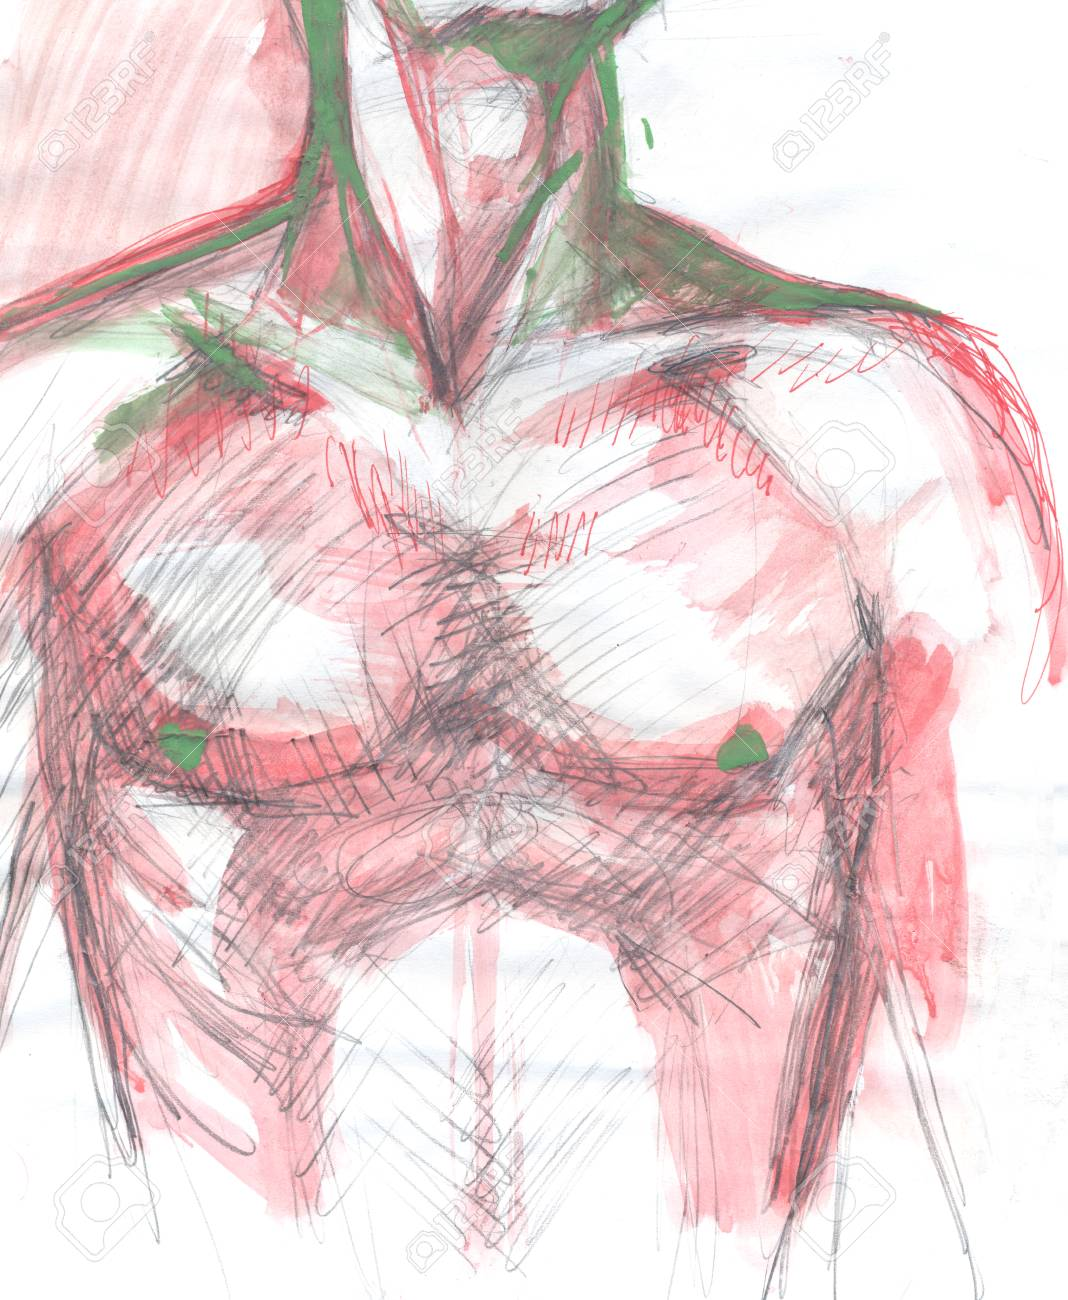 Hand Drawn Colored Illustration Of A Human Male Chest Original